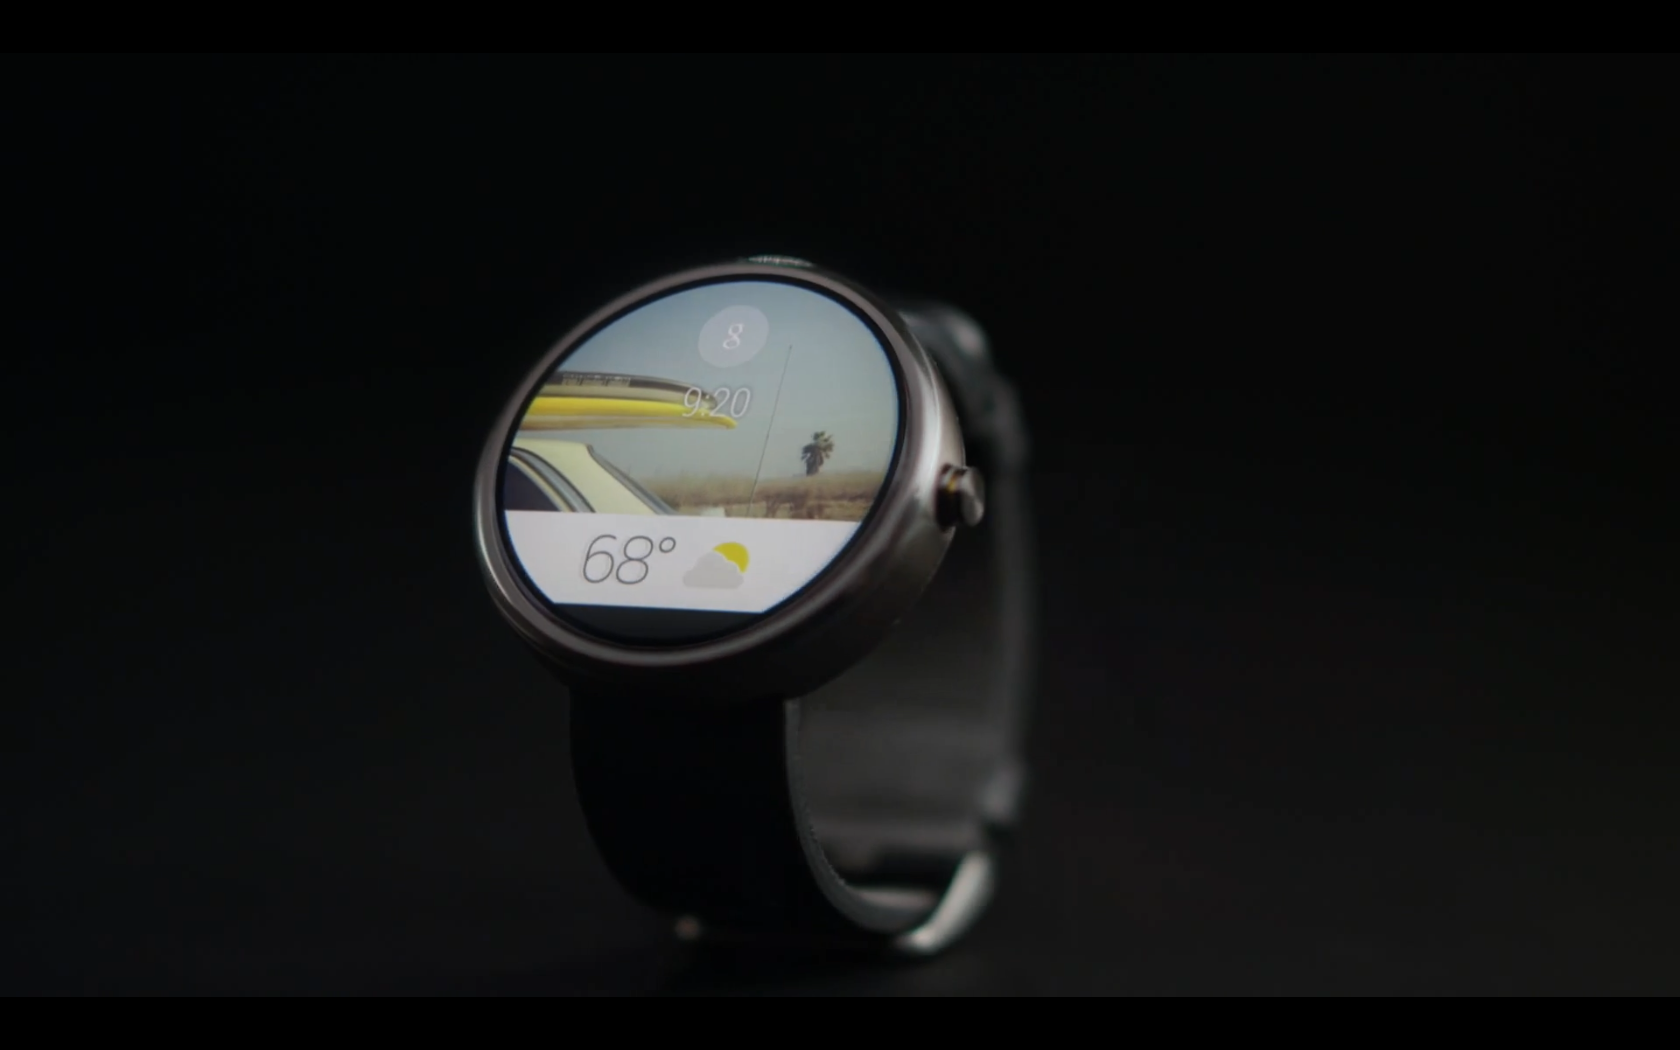 Google published a video on its blog showing features that Android 'smartwatches' may boast. (Image courtesy: Google)